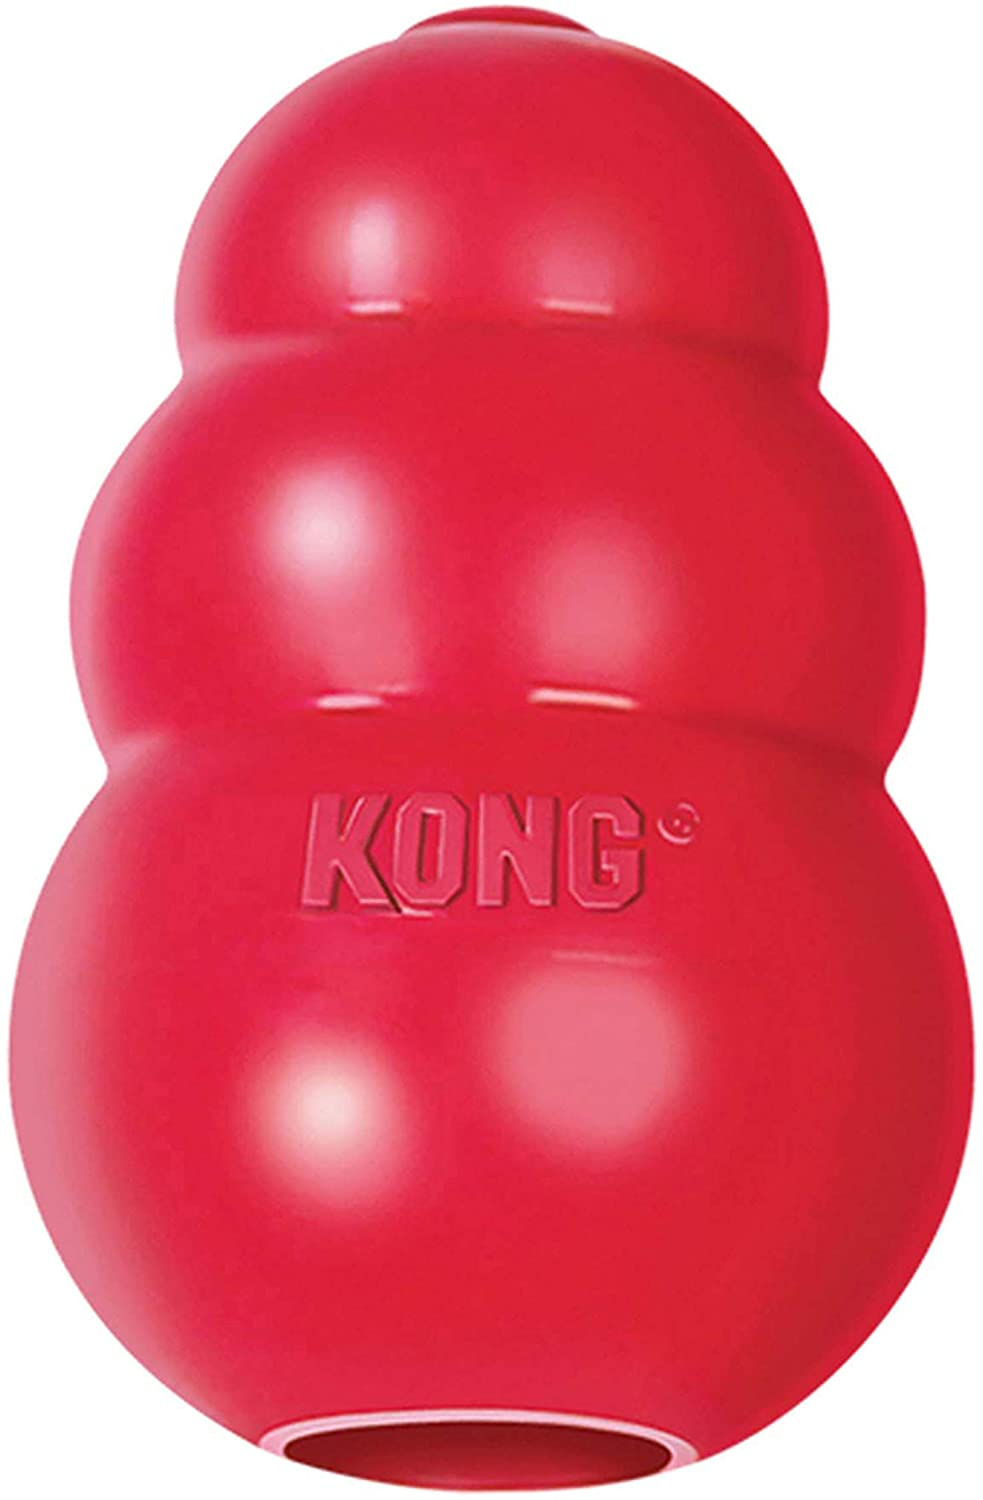 Kong Food dispensing toy for dogs